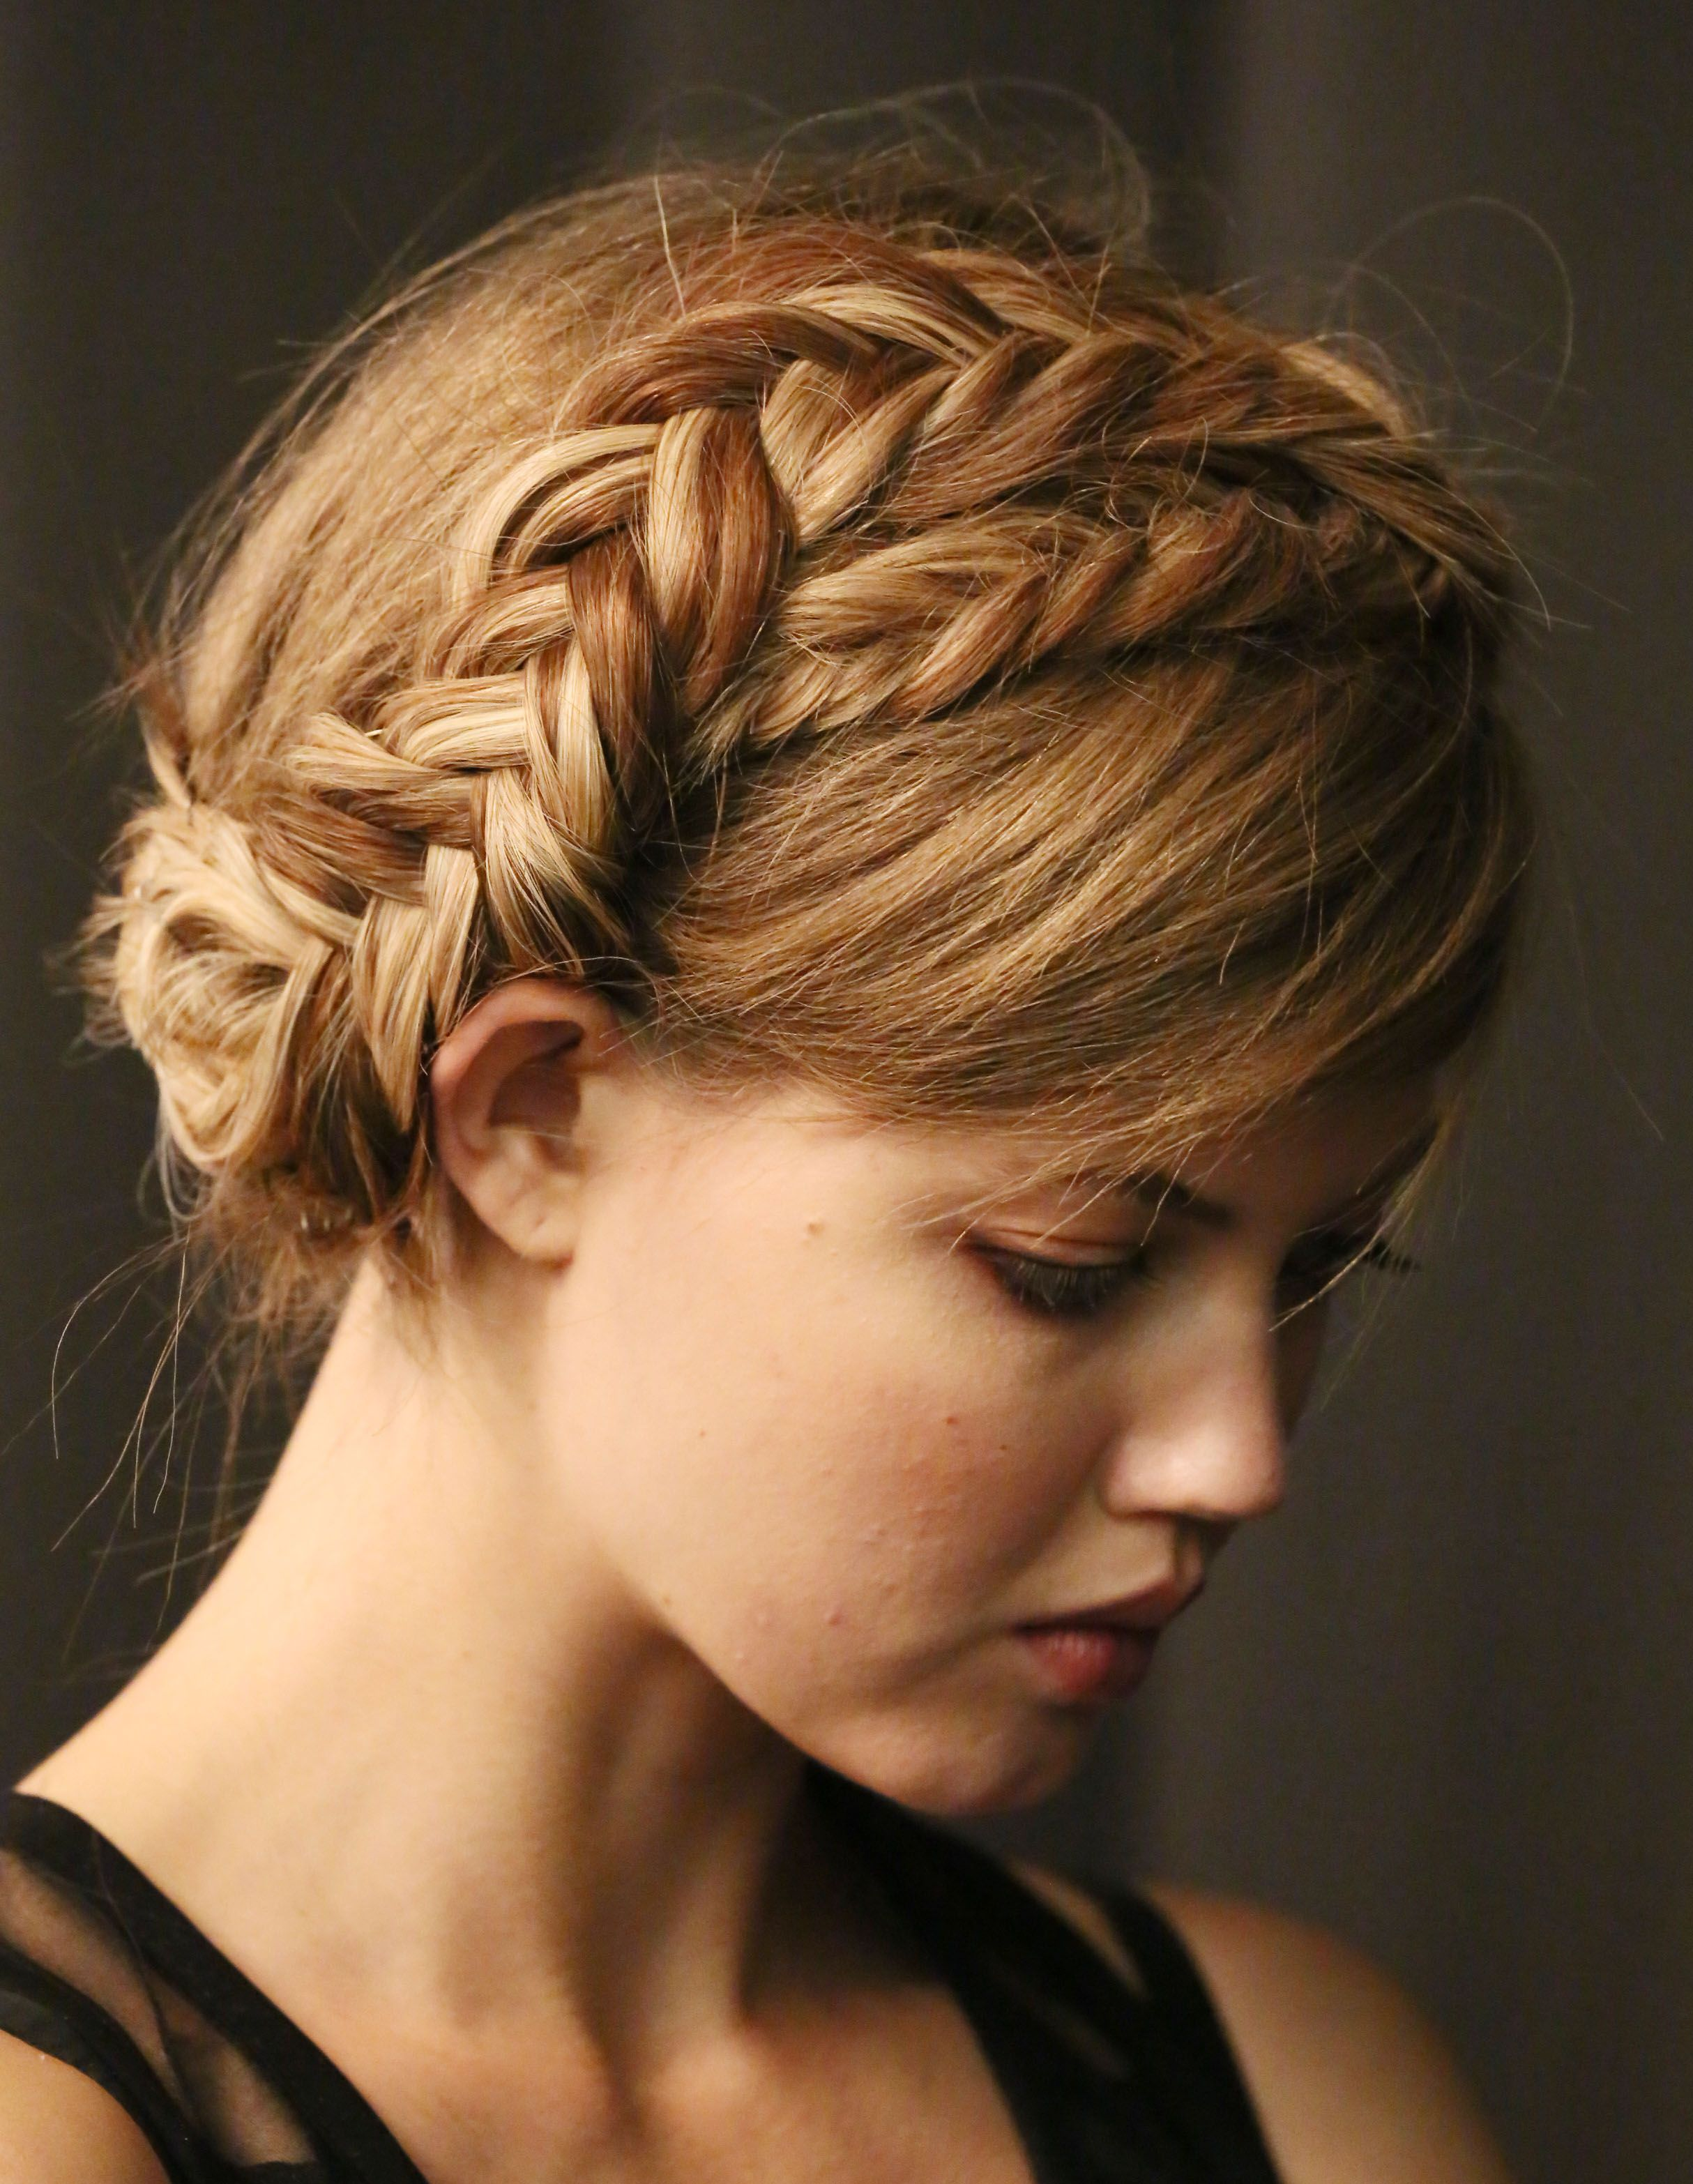 Cfl S 5 Top Beauty Trends From Spring 2014 Fashion Week Hair Styles Pretty Hairstyles Long Hair Styles